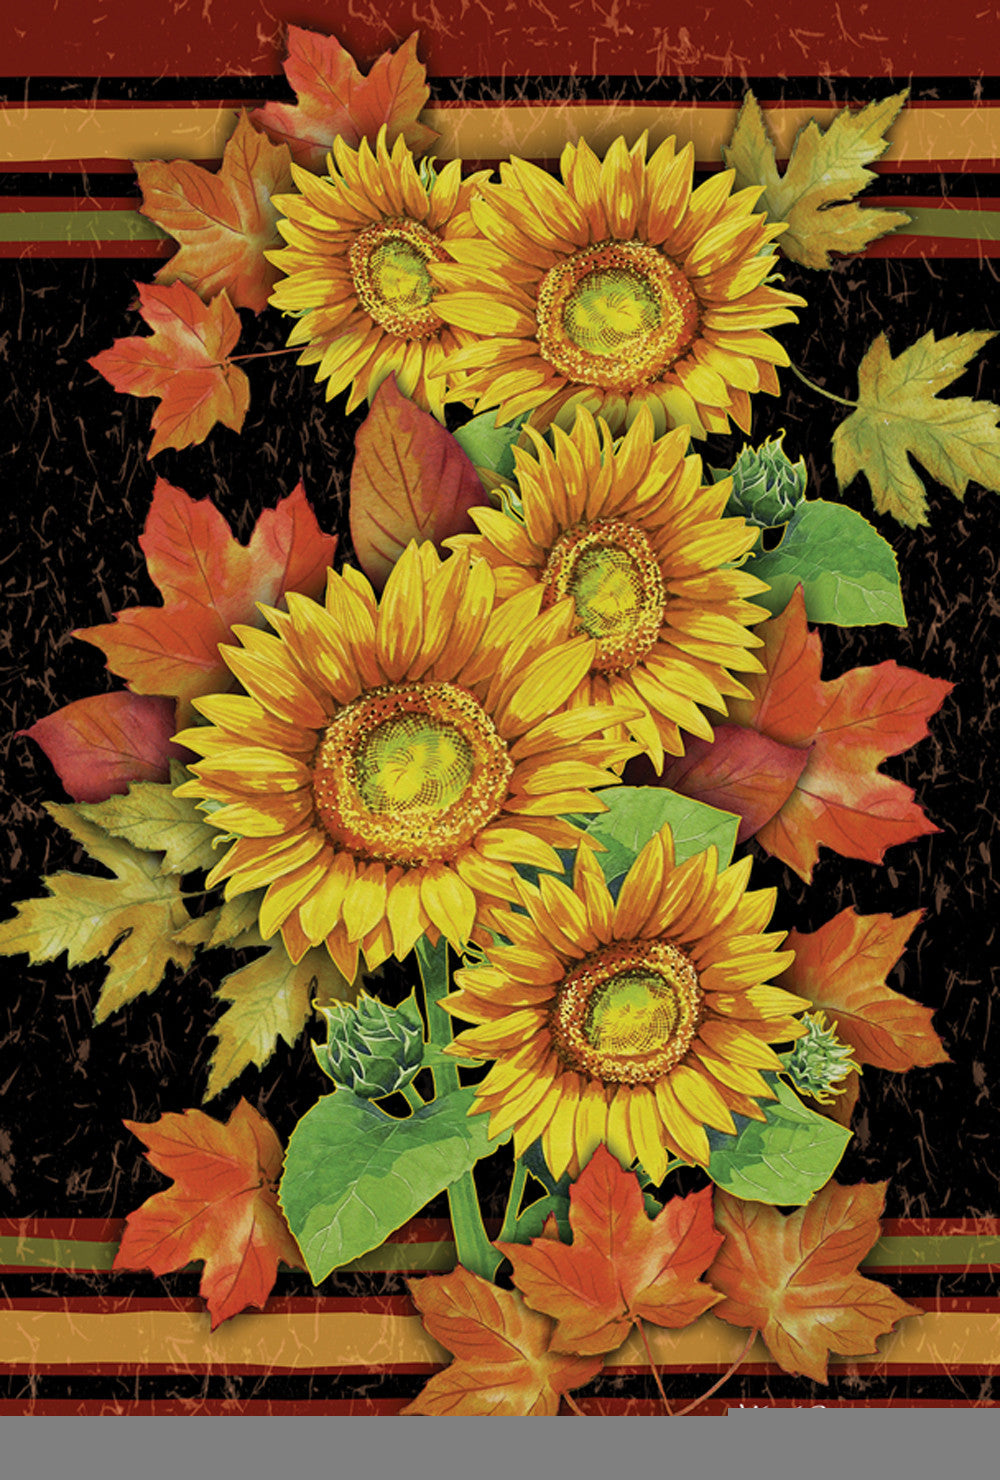 Sunflowers & Leaves Garden Flag